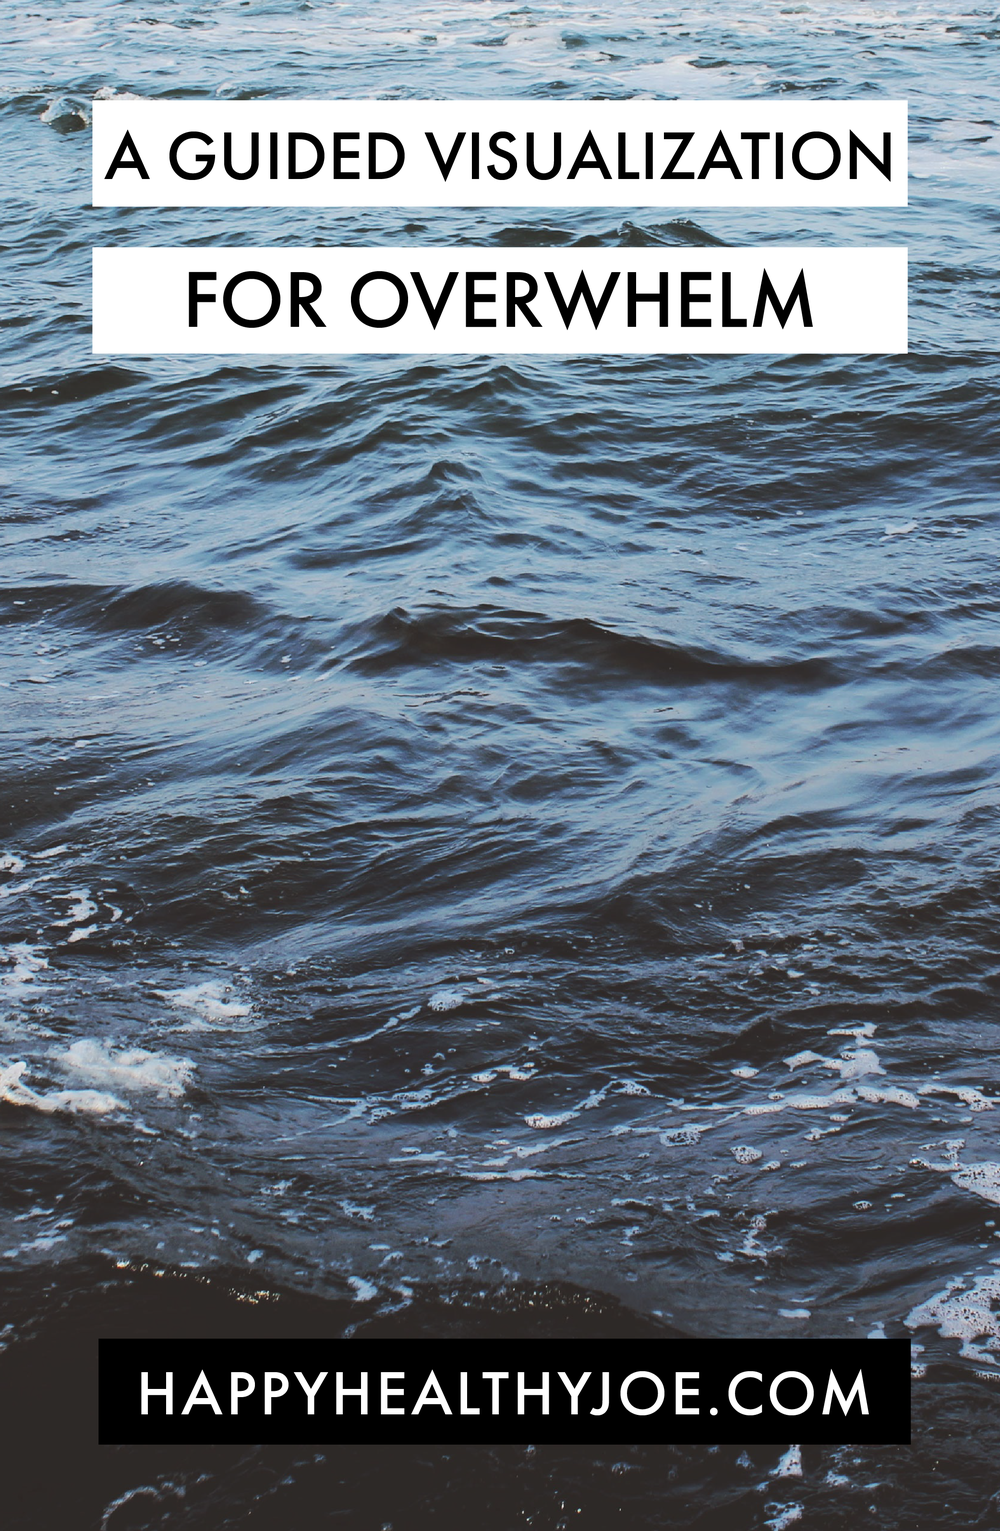 A Guided Visualization for Overwhelm Happy Healthy Joe doTERRA Essential Oils Integrative Health Coach